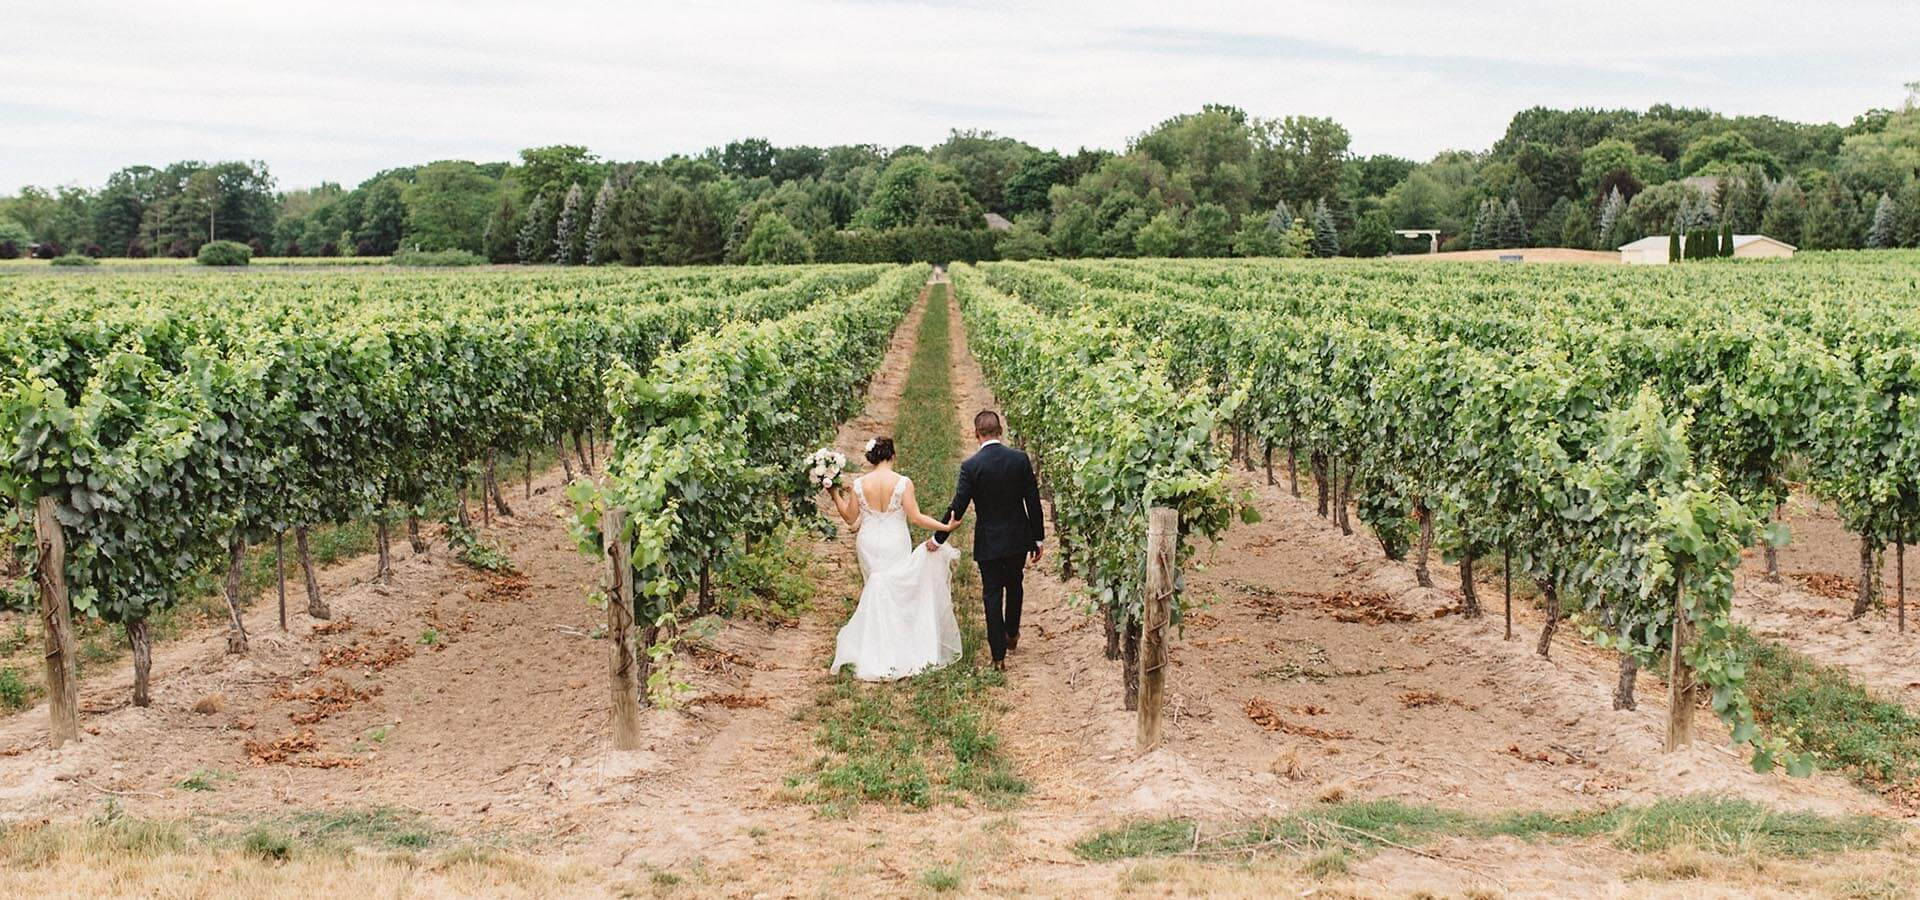 Hero image for Jovy and Randy's Intimate Vineyard Wedding at Kurtz Orchards